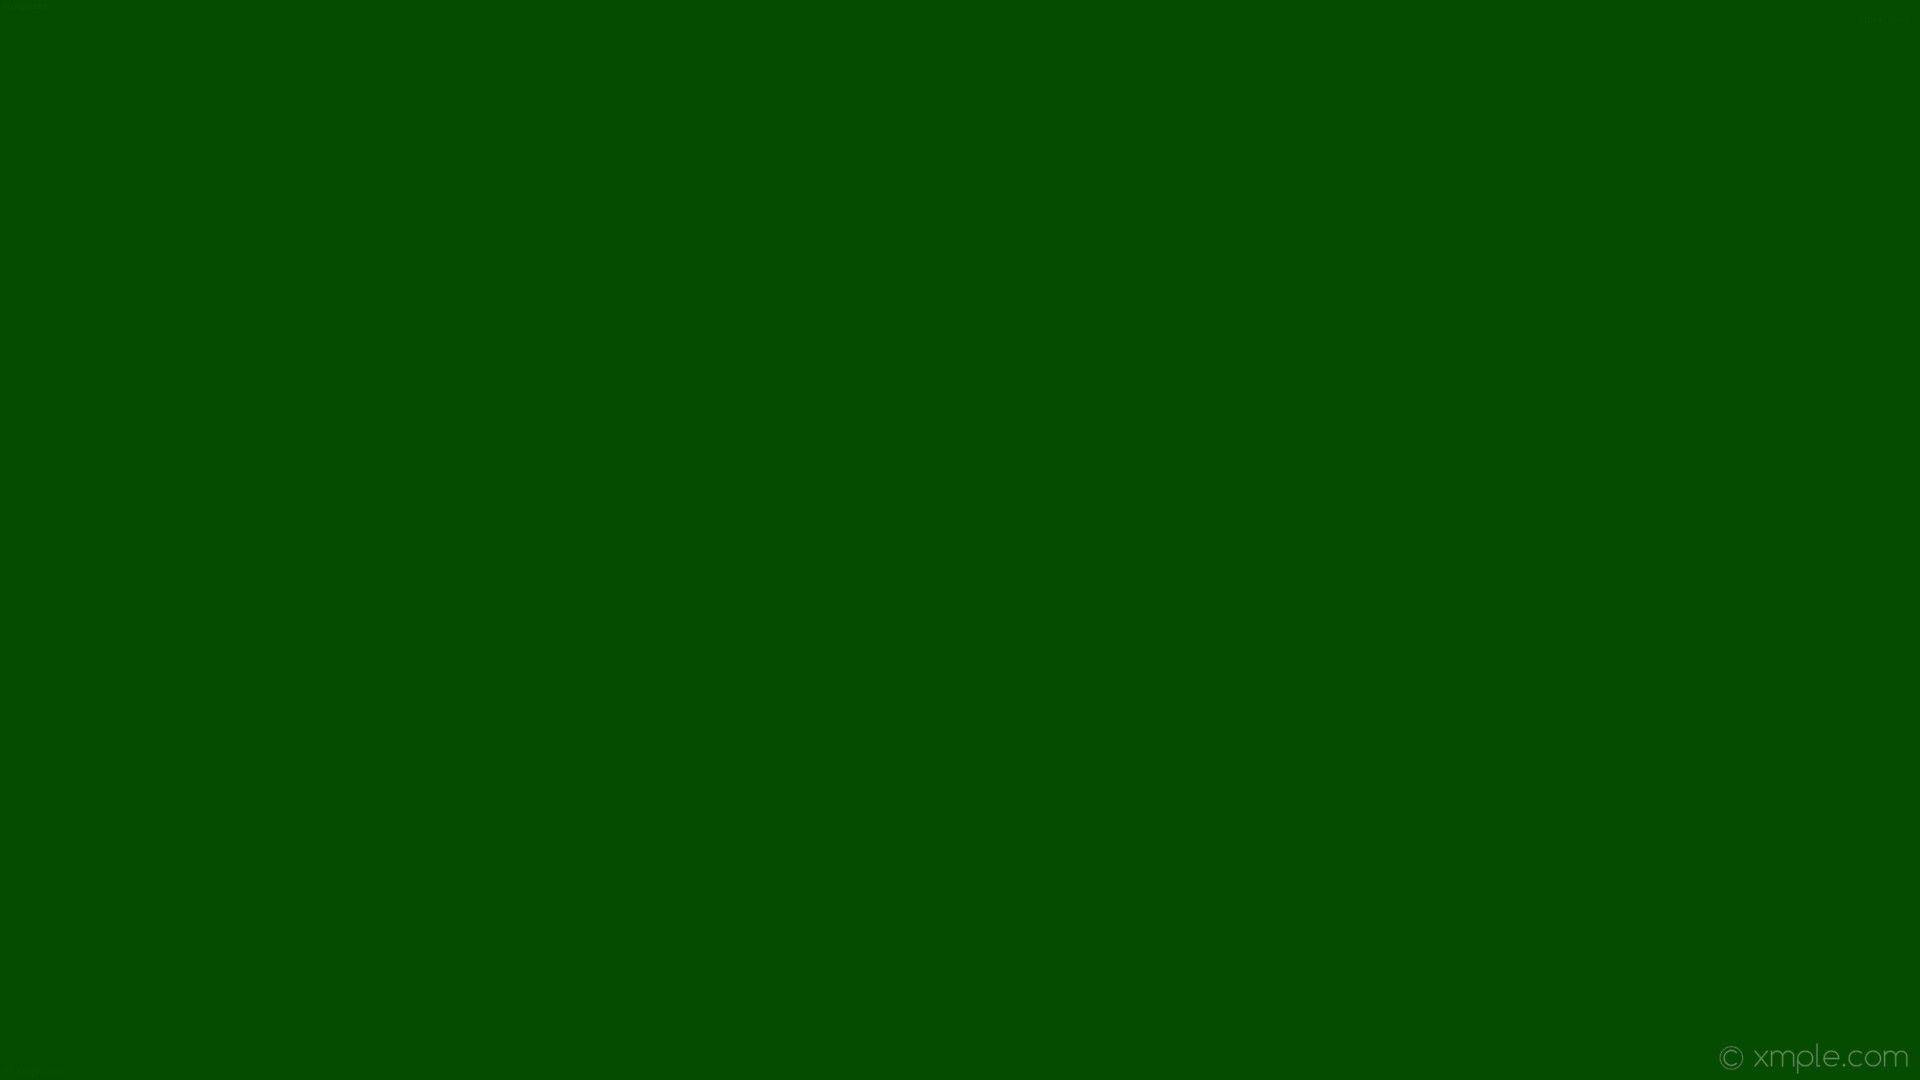 1920x1080 - Solid Green 15